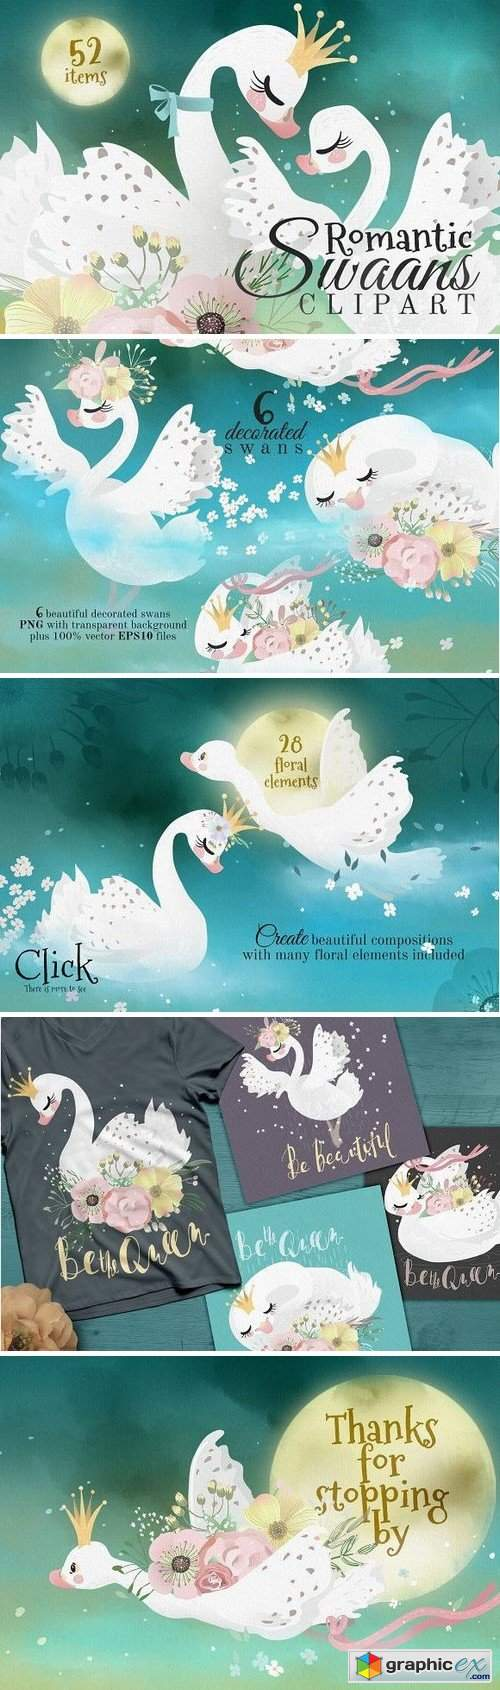 Romantic Swans Clipart